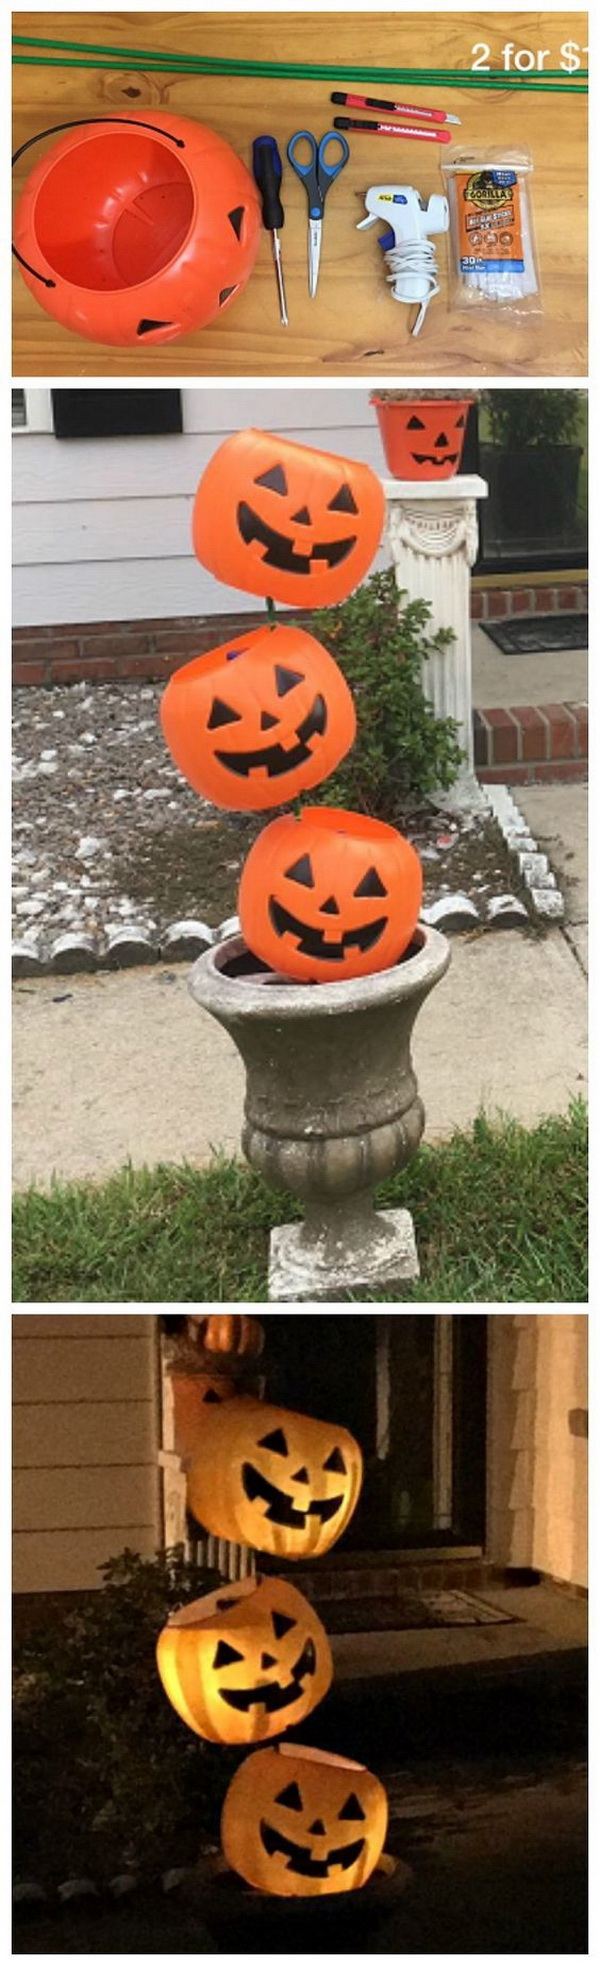 30+ homemade halloween decoration ideas - listing more